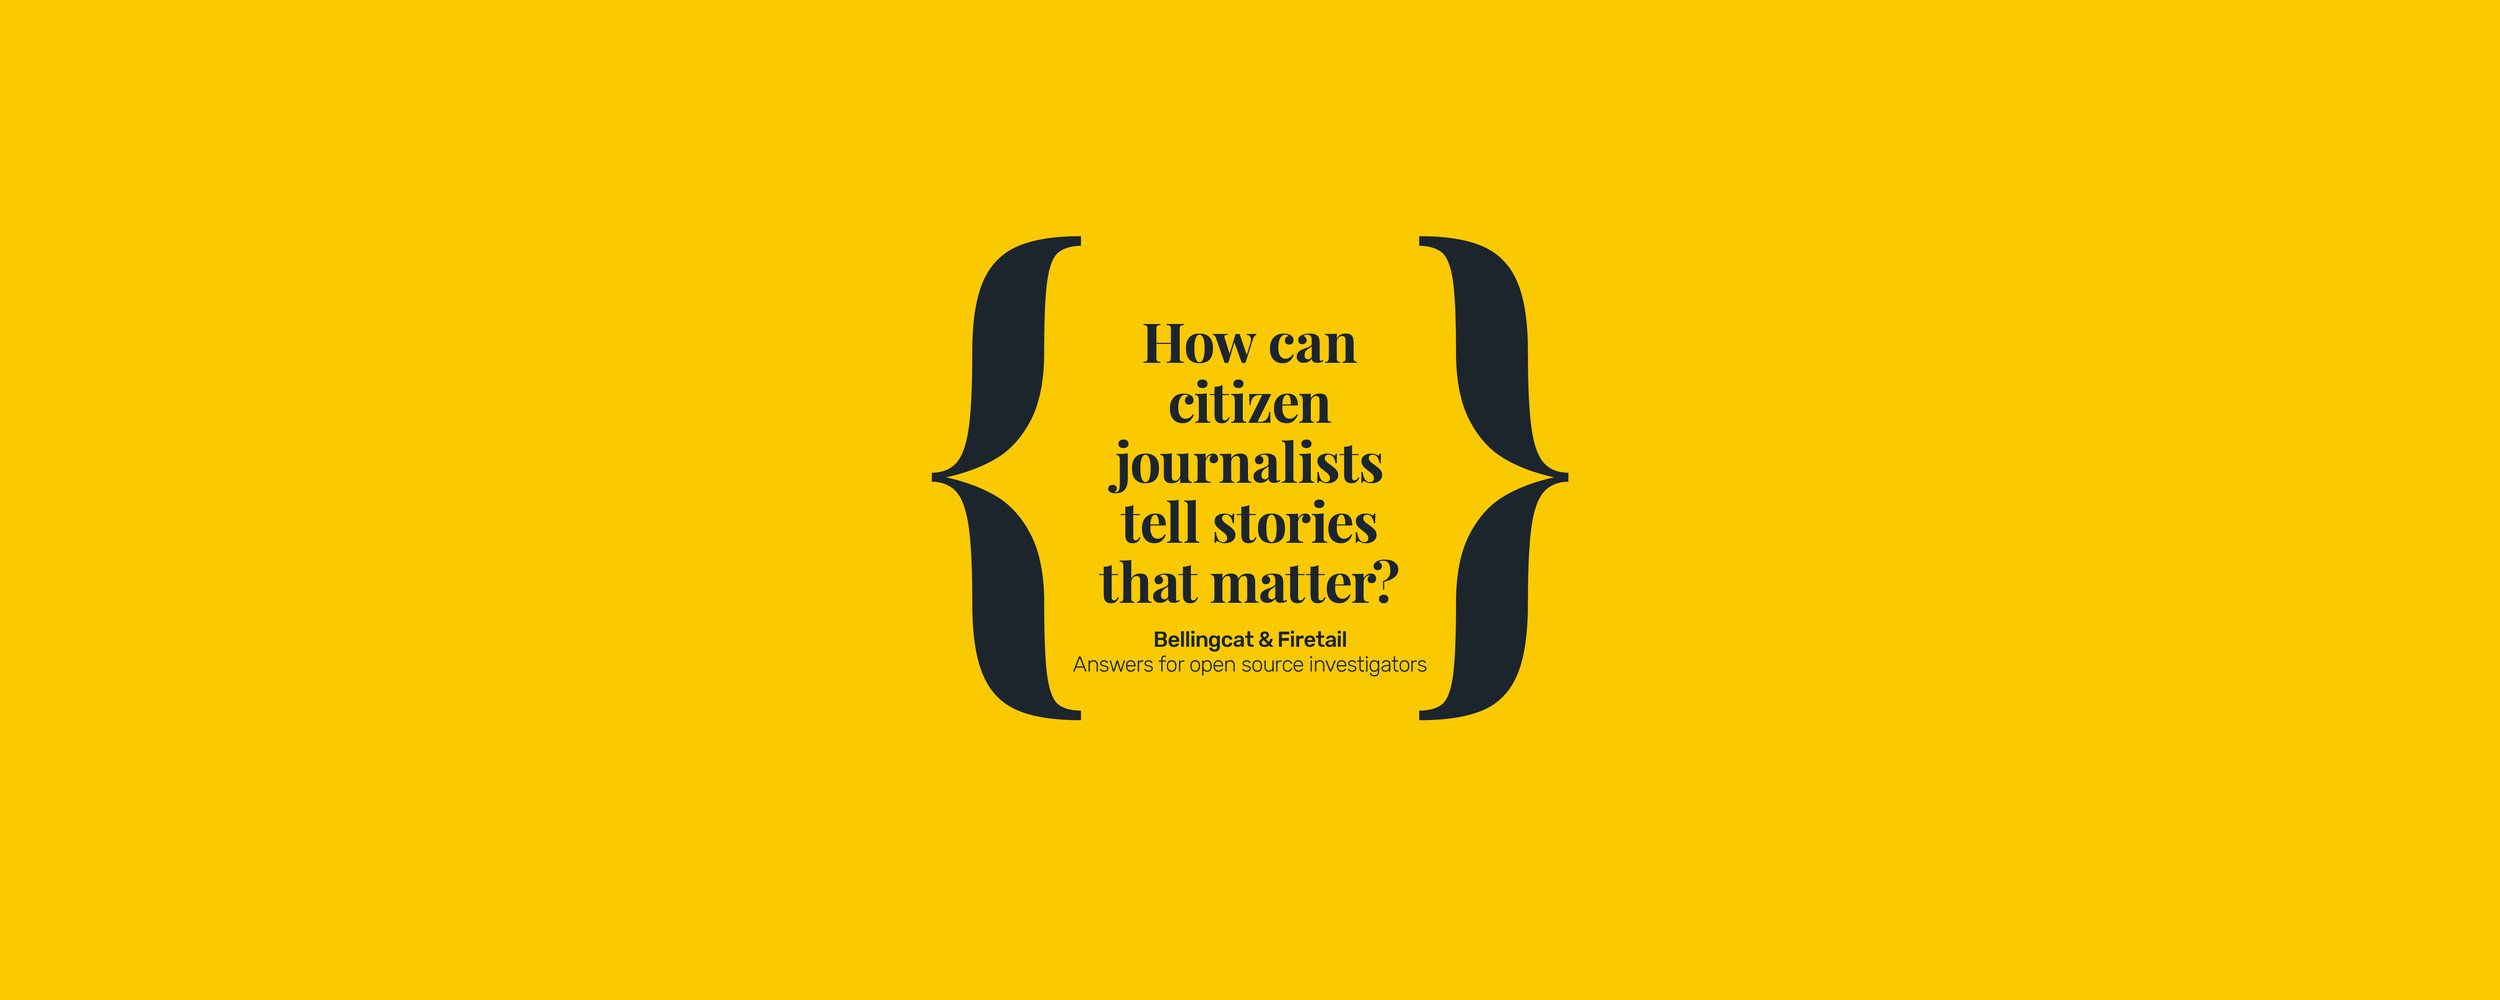 How can citizen journalists tell stories that matter